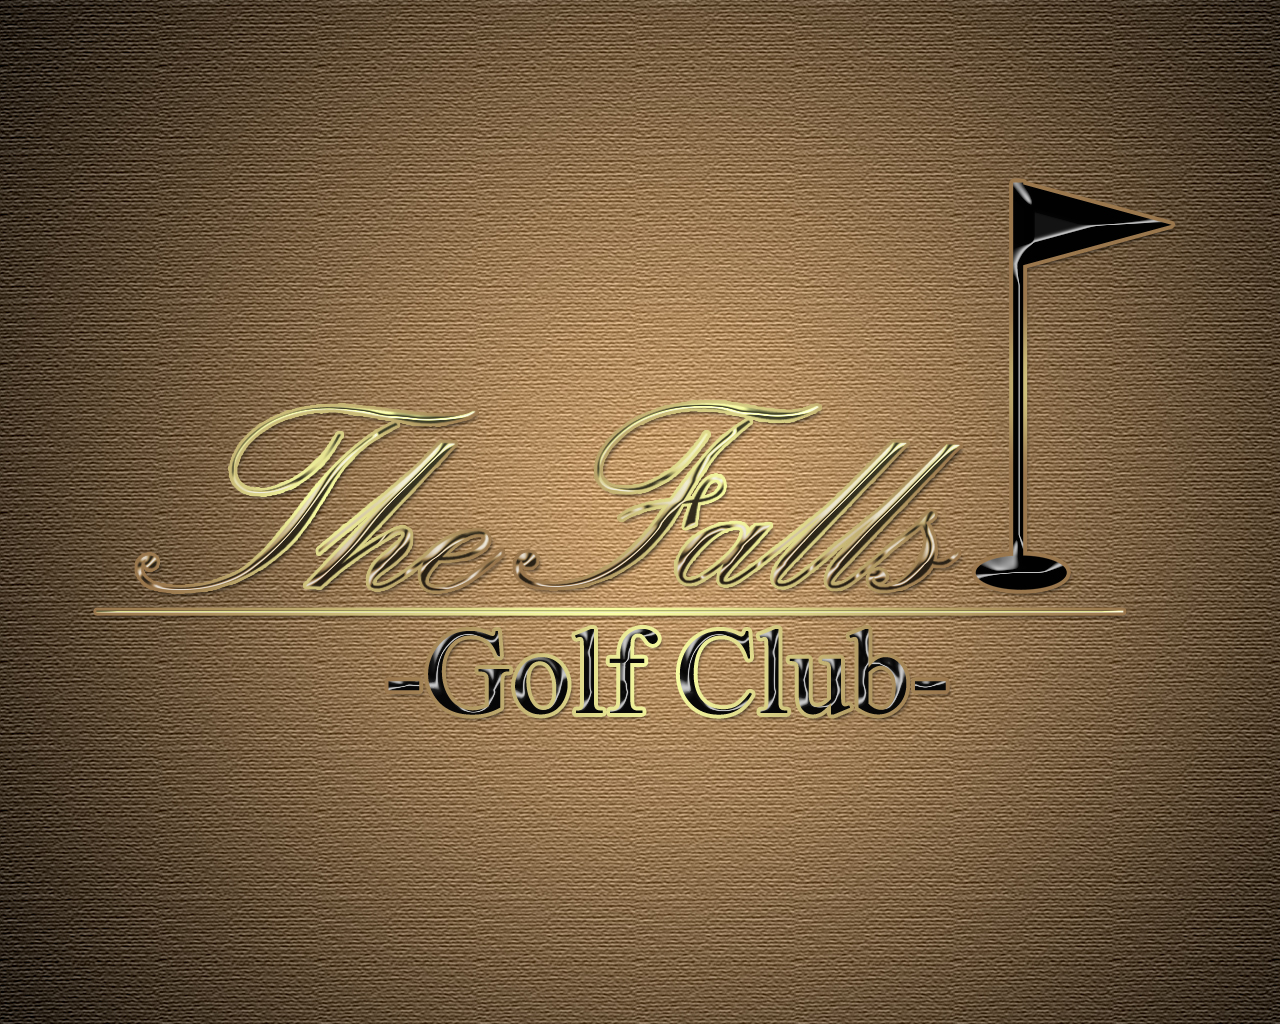 Logo Design by Mythos Designs - Entry No. 113 in the Logo Design Contest The Falls Golf Club Logo Design.